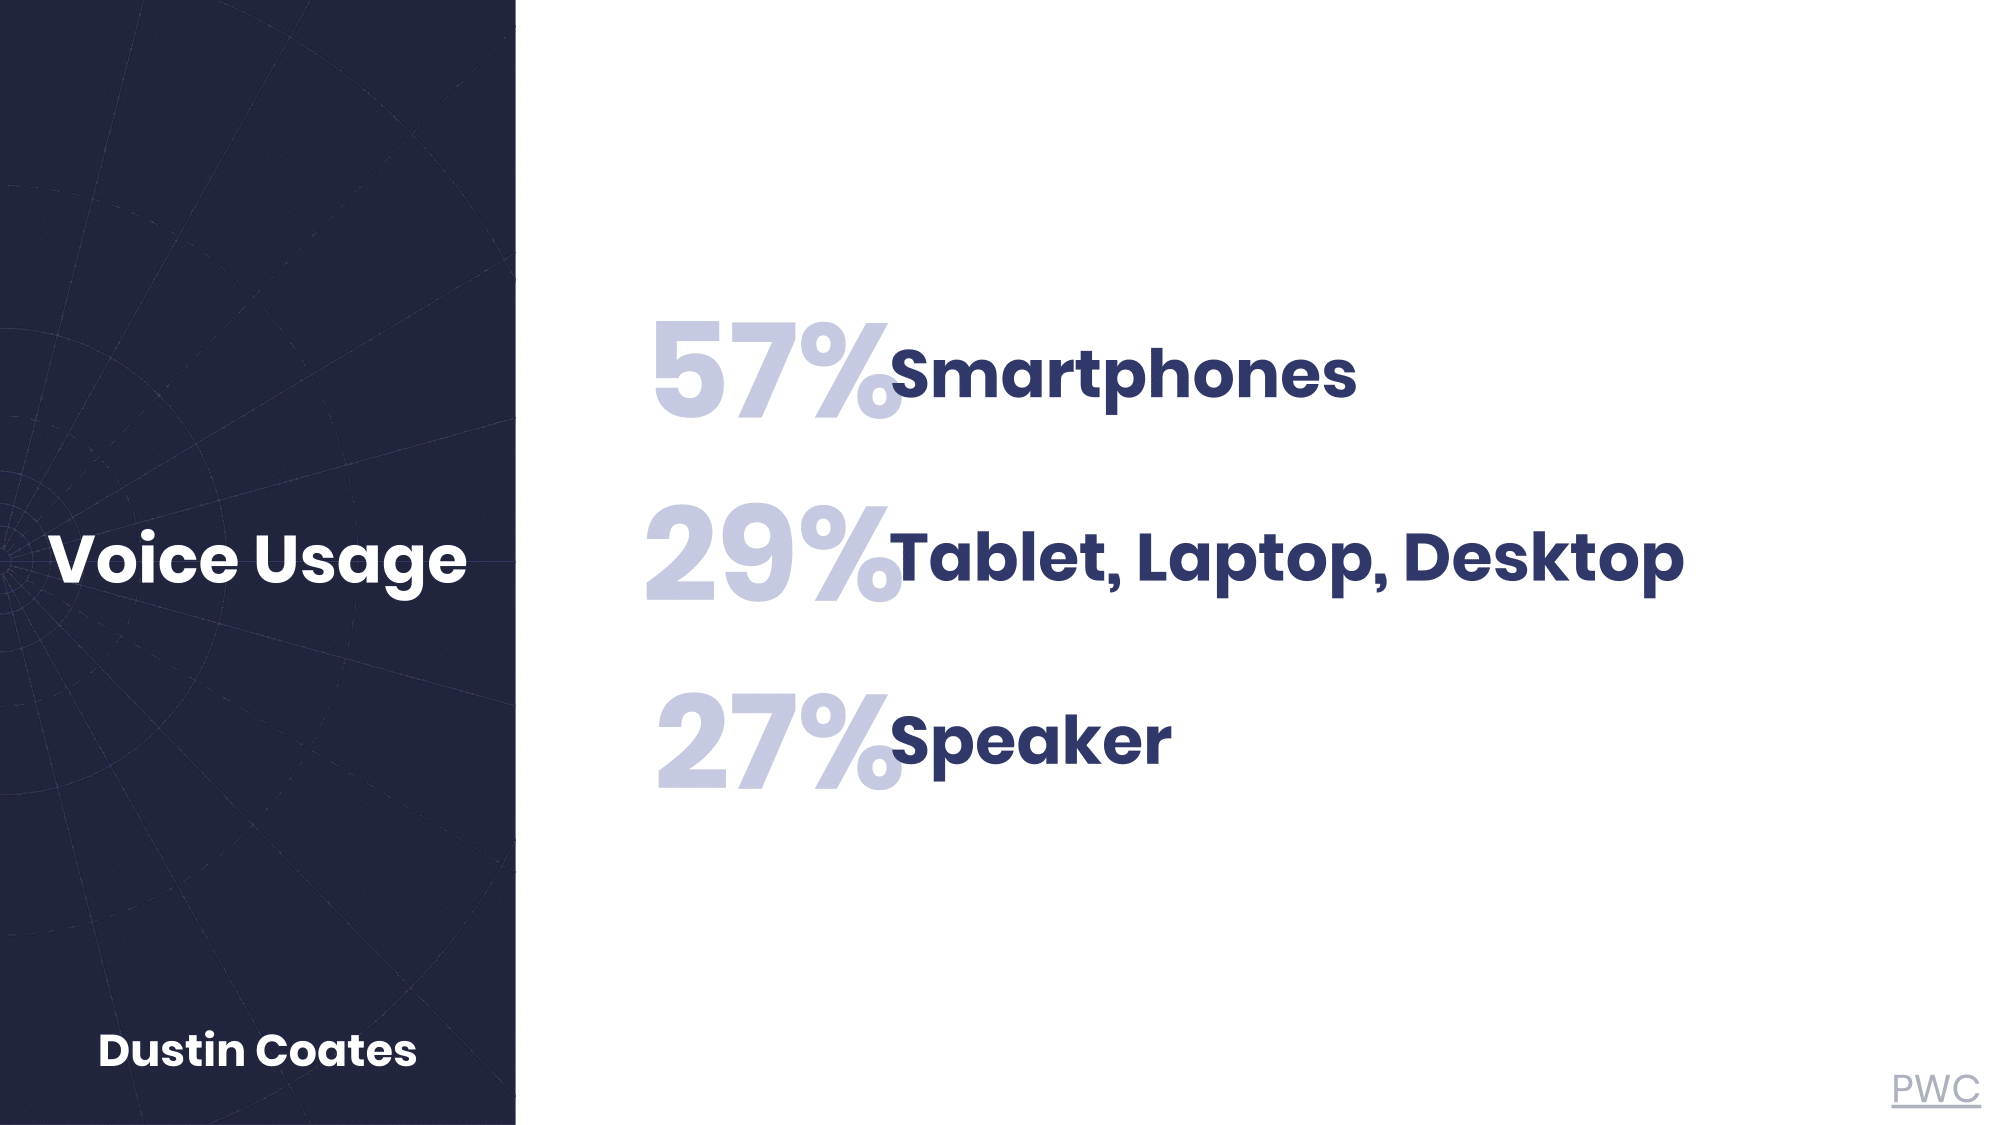 Voice usage stats by device